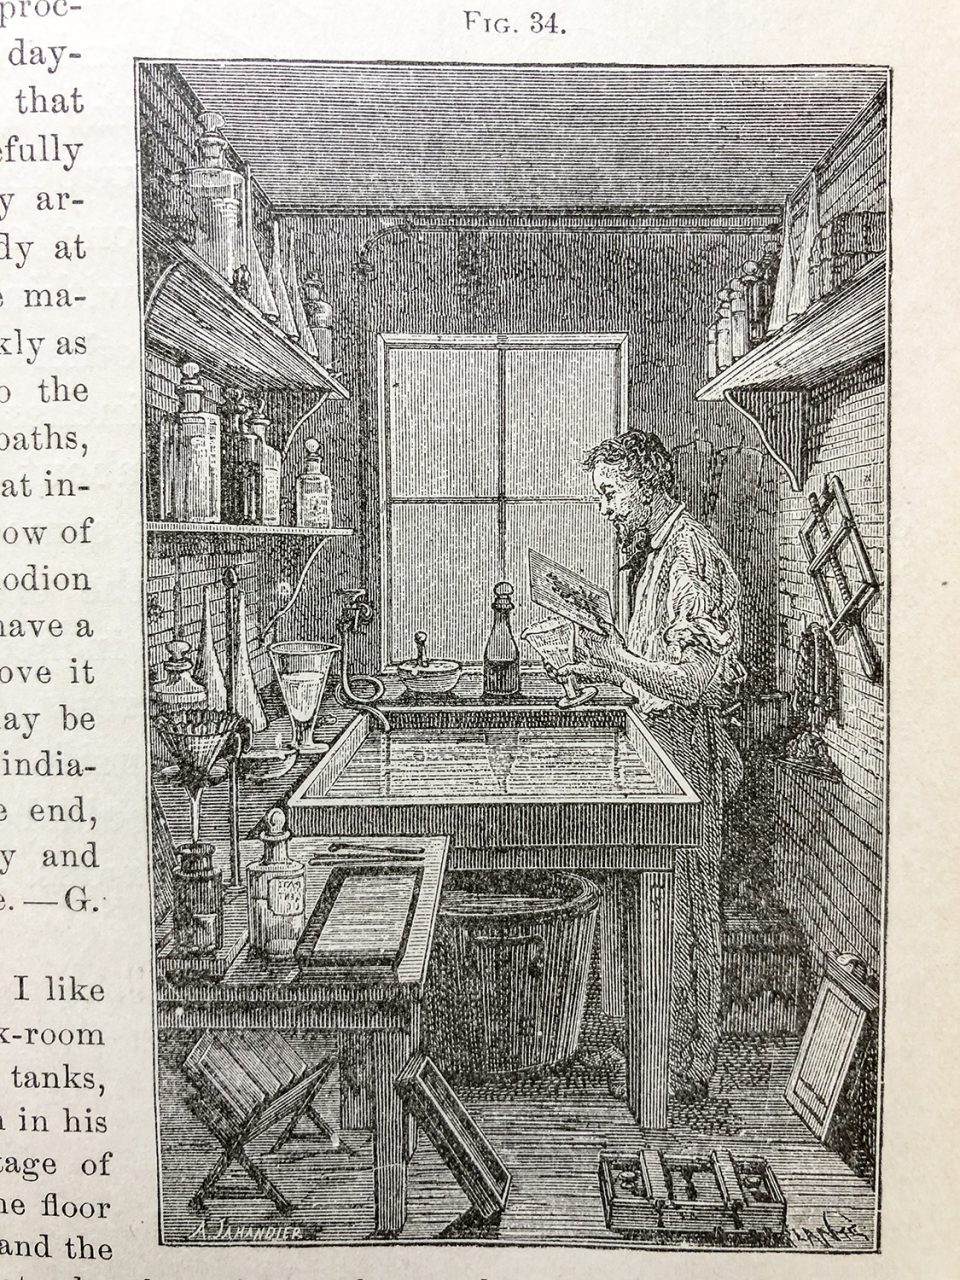 This engraving depicts a photographer working in the darkroom, from Wilson's Photographics, circa 1881.